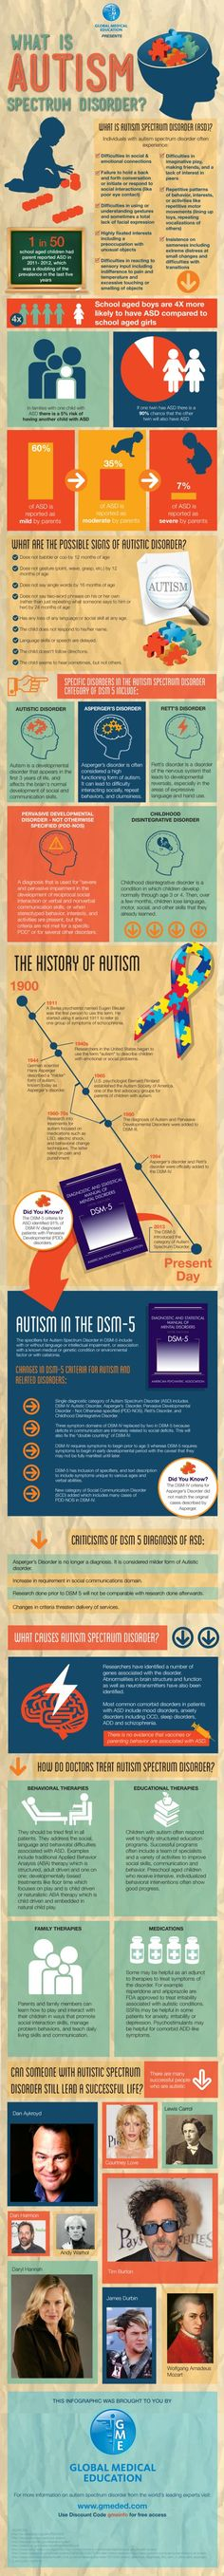 """Autism and the newly coined """"Autism Spectrum Disorder"""" explained via the DSM. #infographic."""